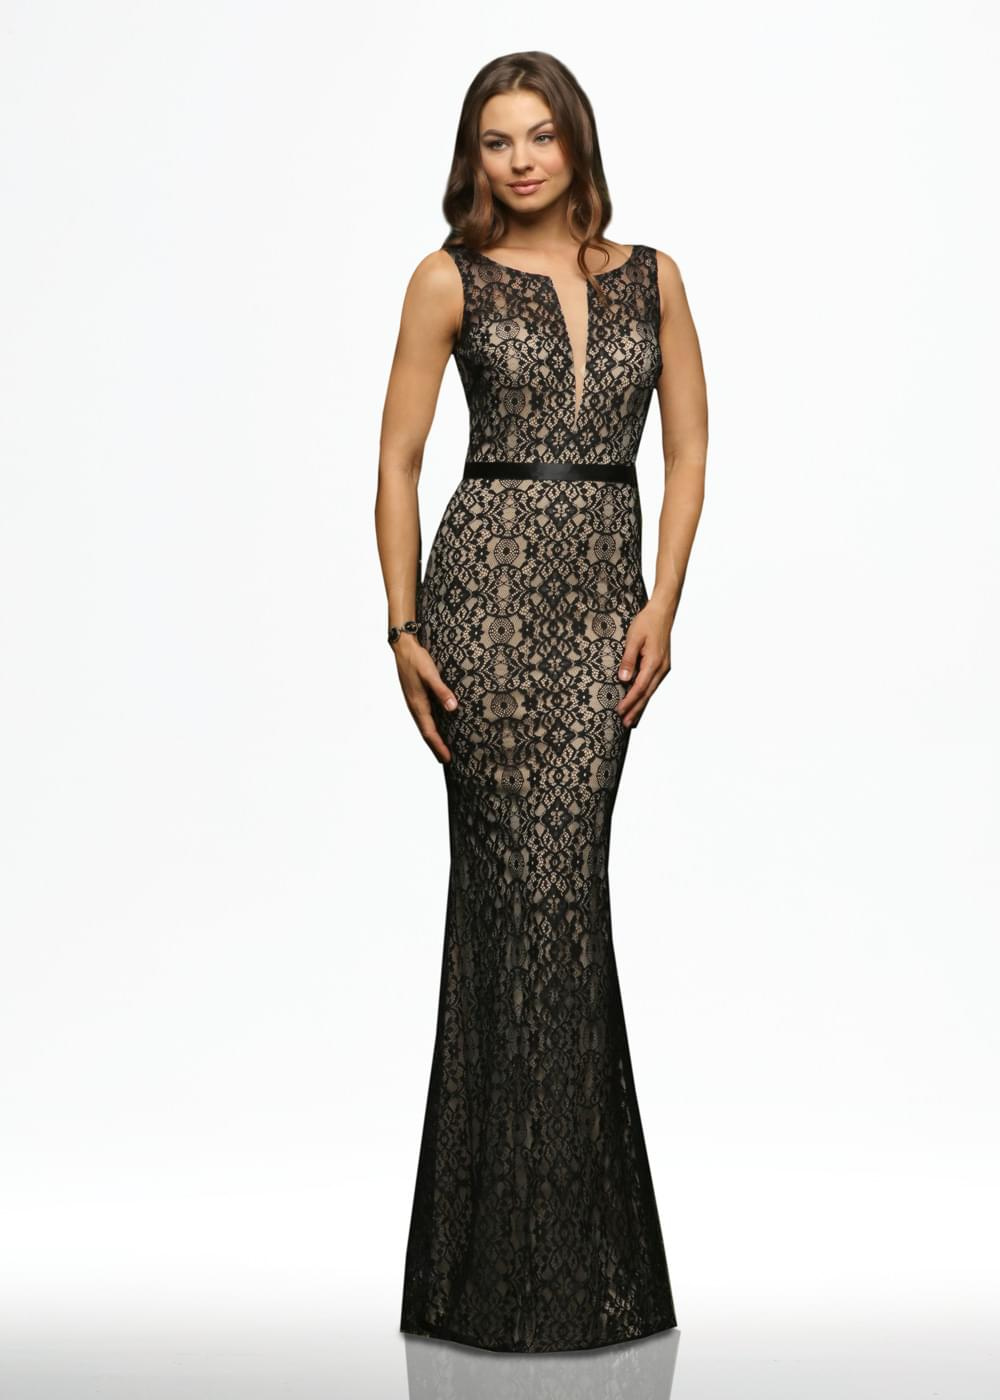 80076 Dresses with Straps By Ashdon